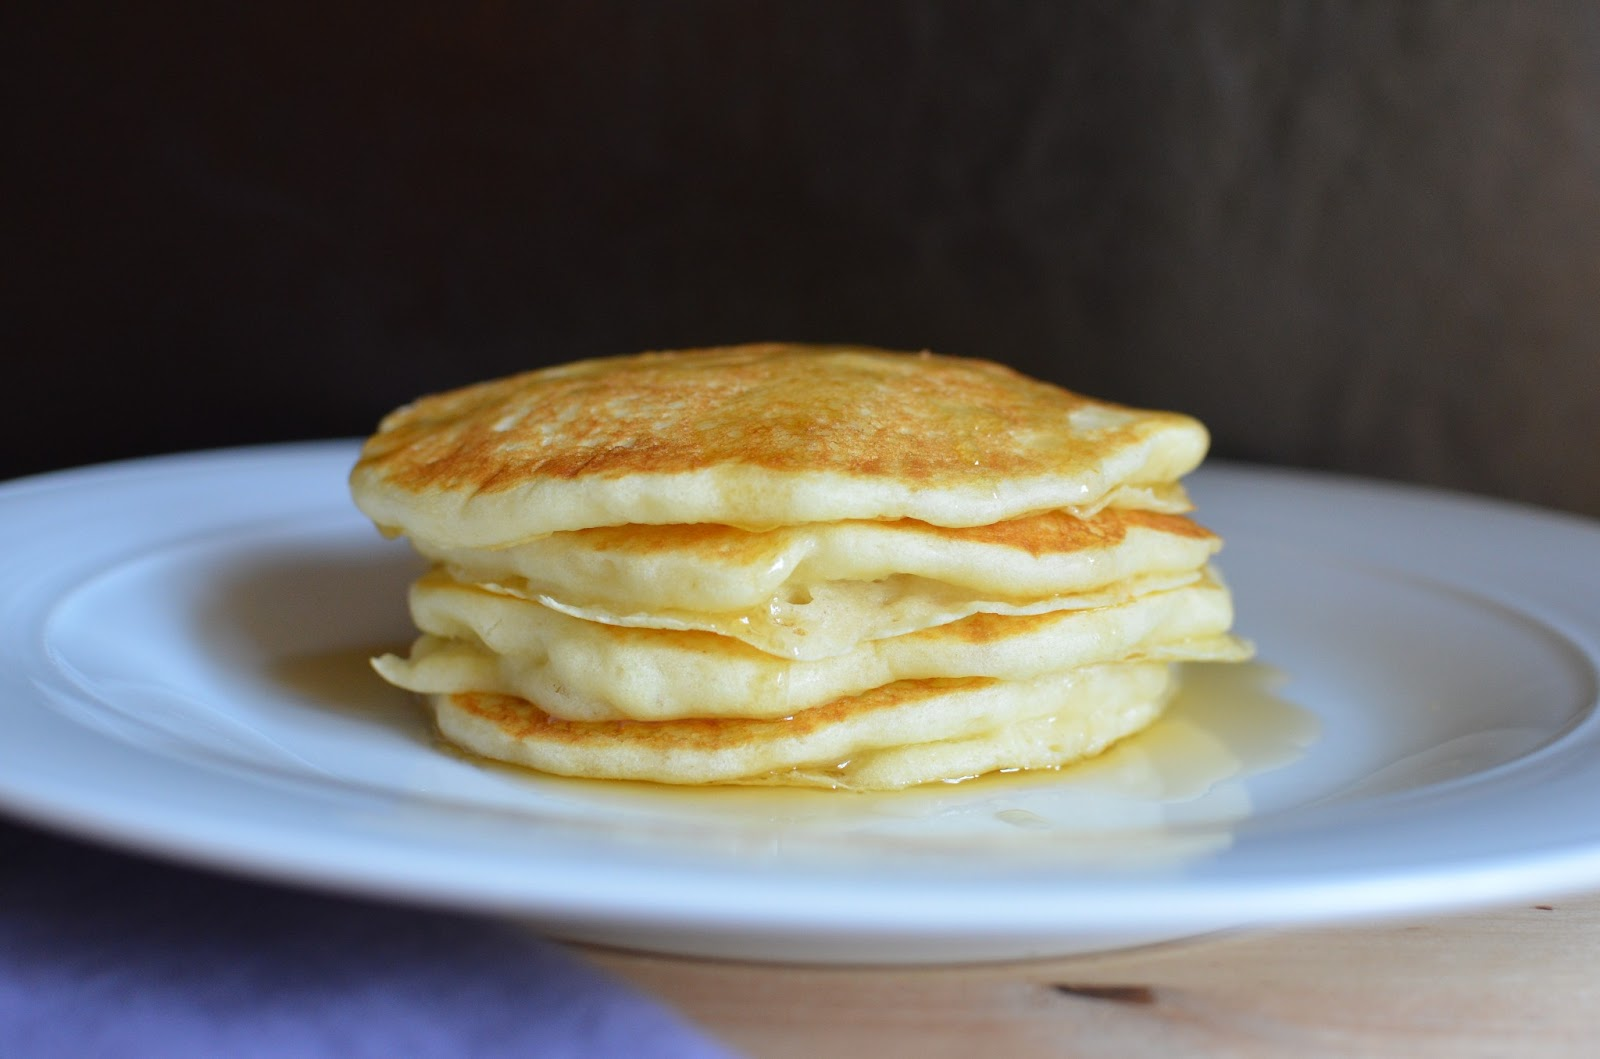 Playing with flour tender pancakes with a secret ingredient generally if i have buttermilk i make these irresistible buttermilk pancakes which even the little one has grown to love the tang though subtle ccuart Image collections